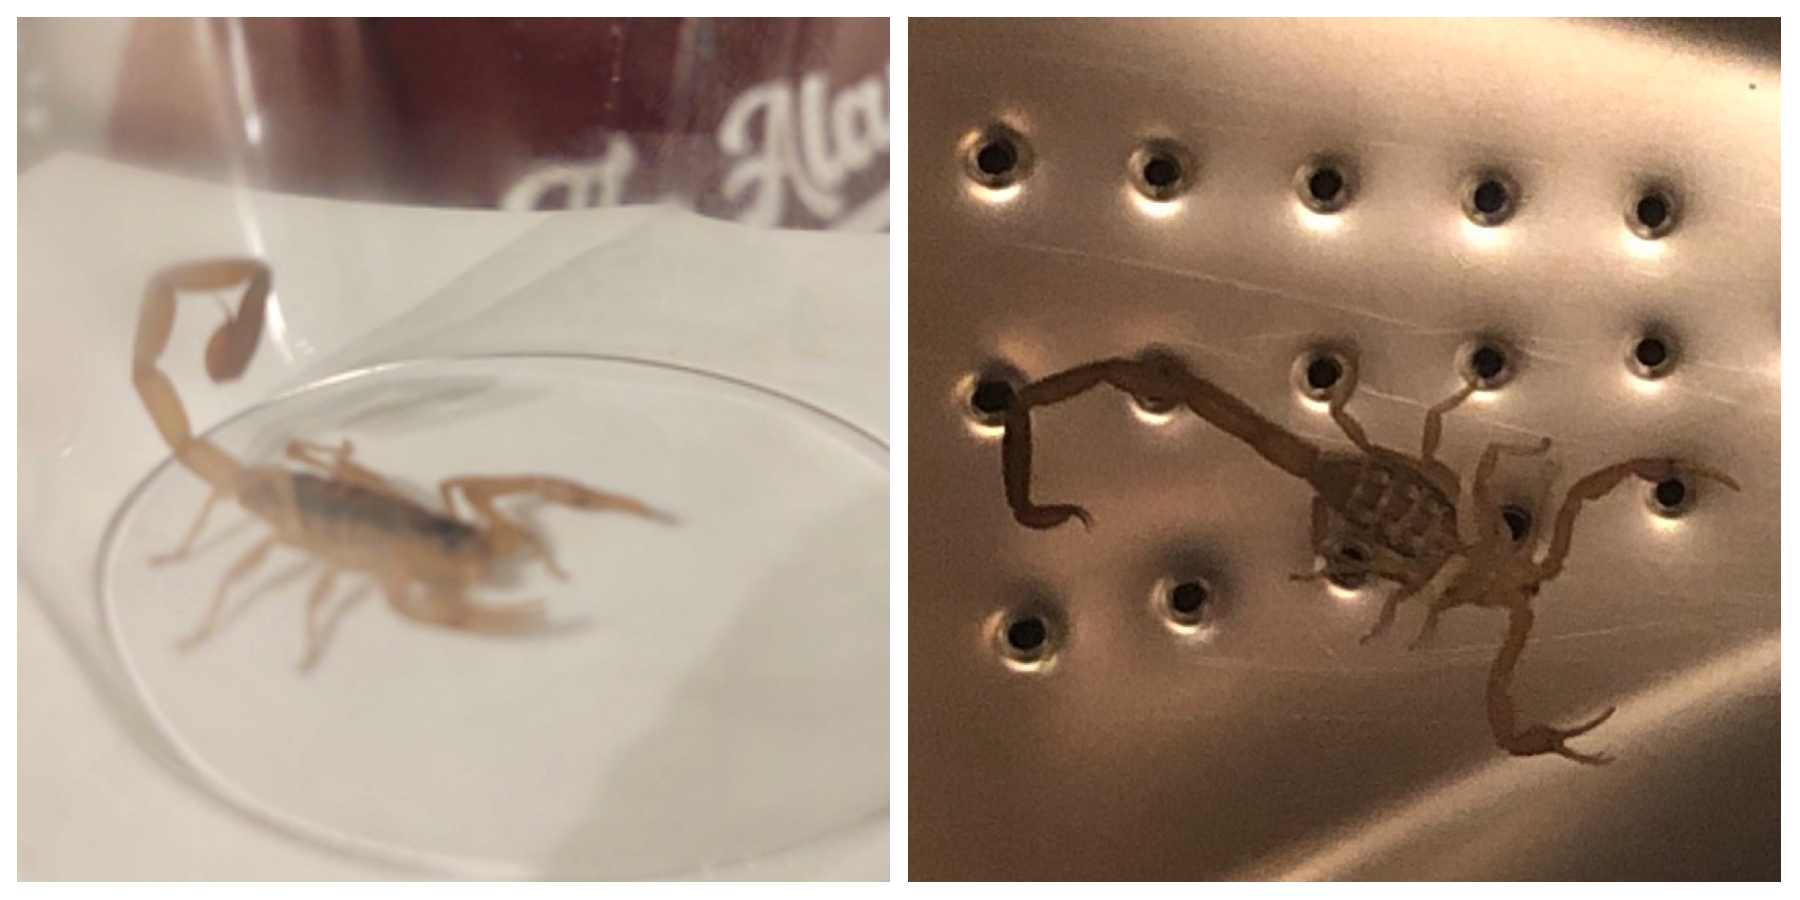 Photos of 2 scorpions. One on the left is alive and well, the one on the right has been through the wash and is dead.